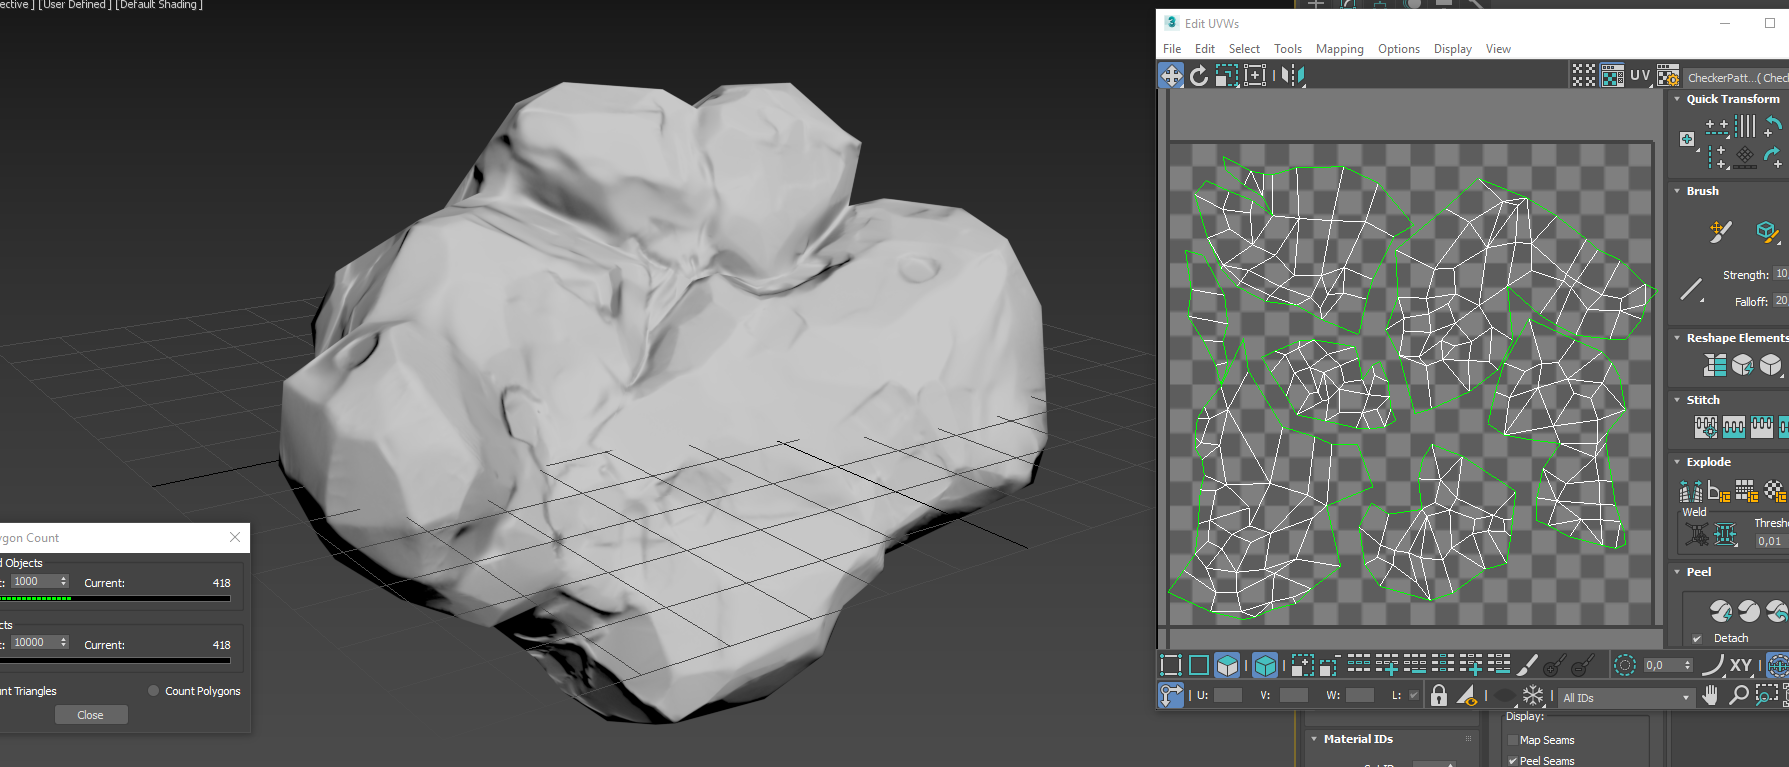 My object in 3ds max with normal mapping and UV mapping